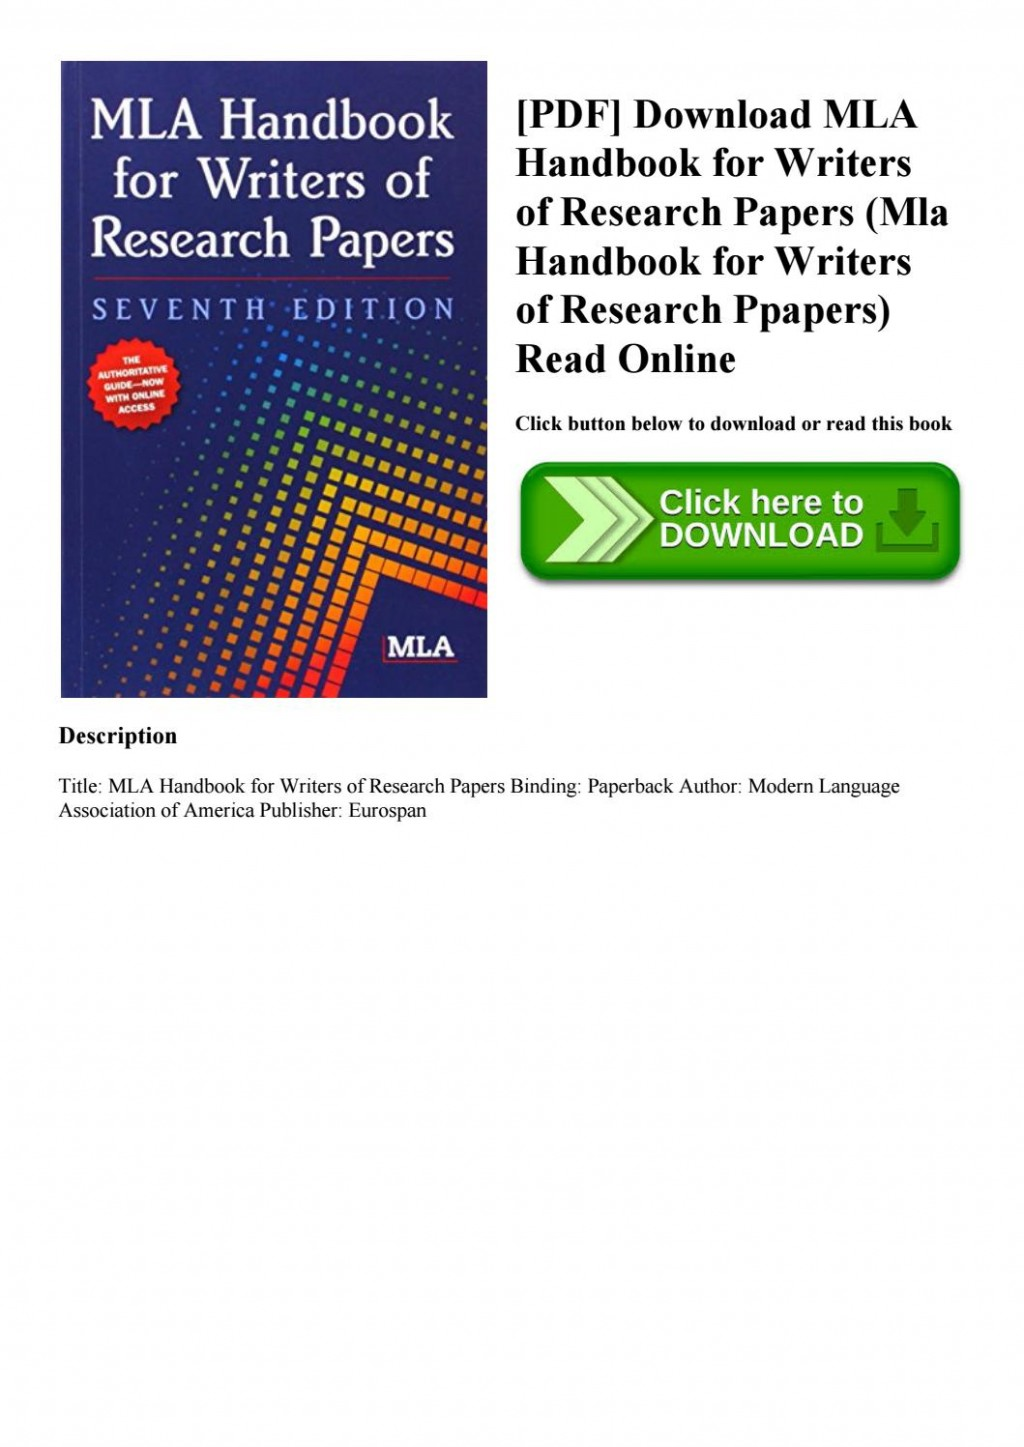 001 Mla Handbook For Writing Research Papers Pdf Paper Page 1 Beautiful Writers Of 7th Edition Free 6th 2009 Large